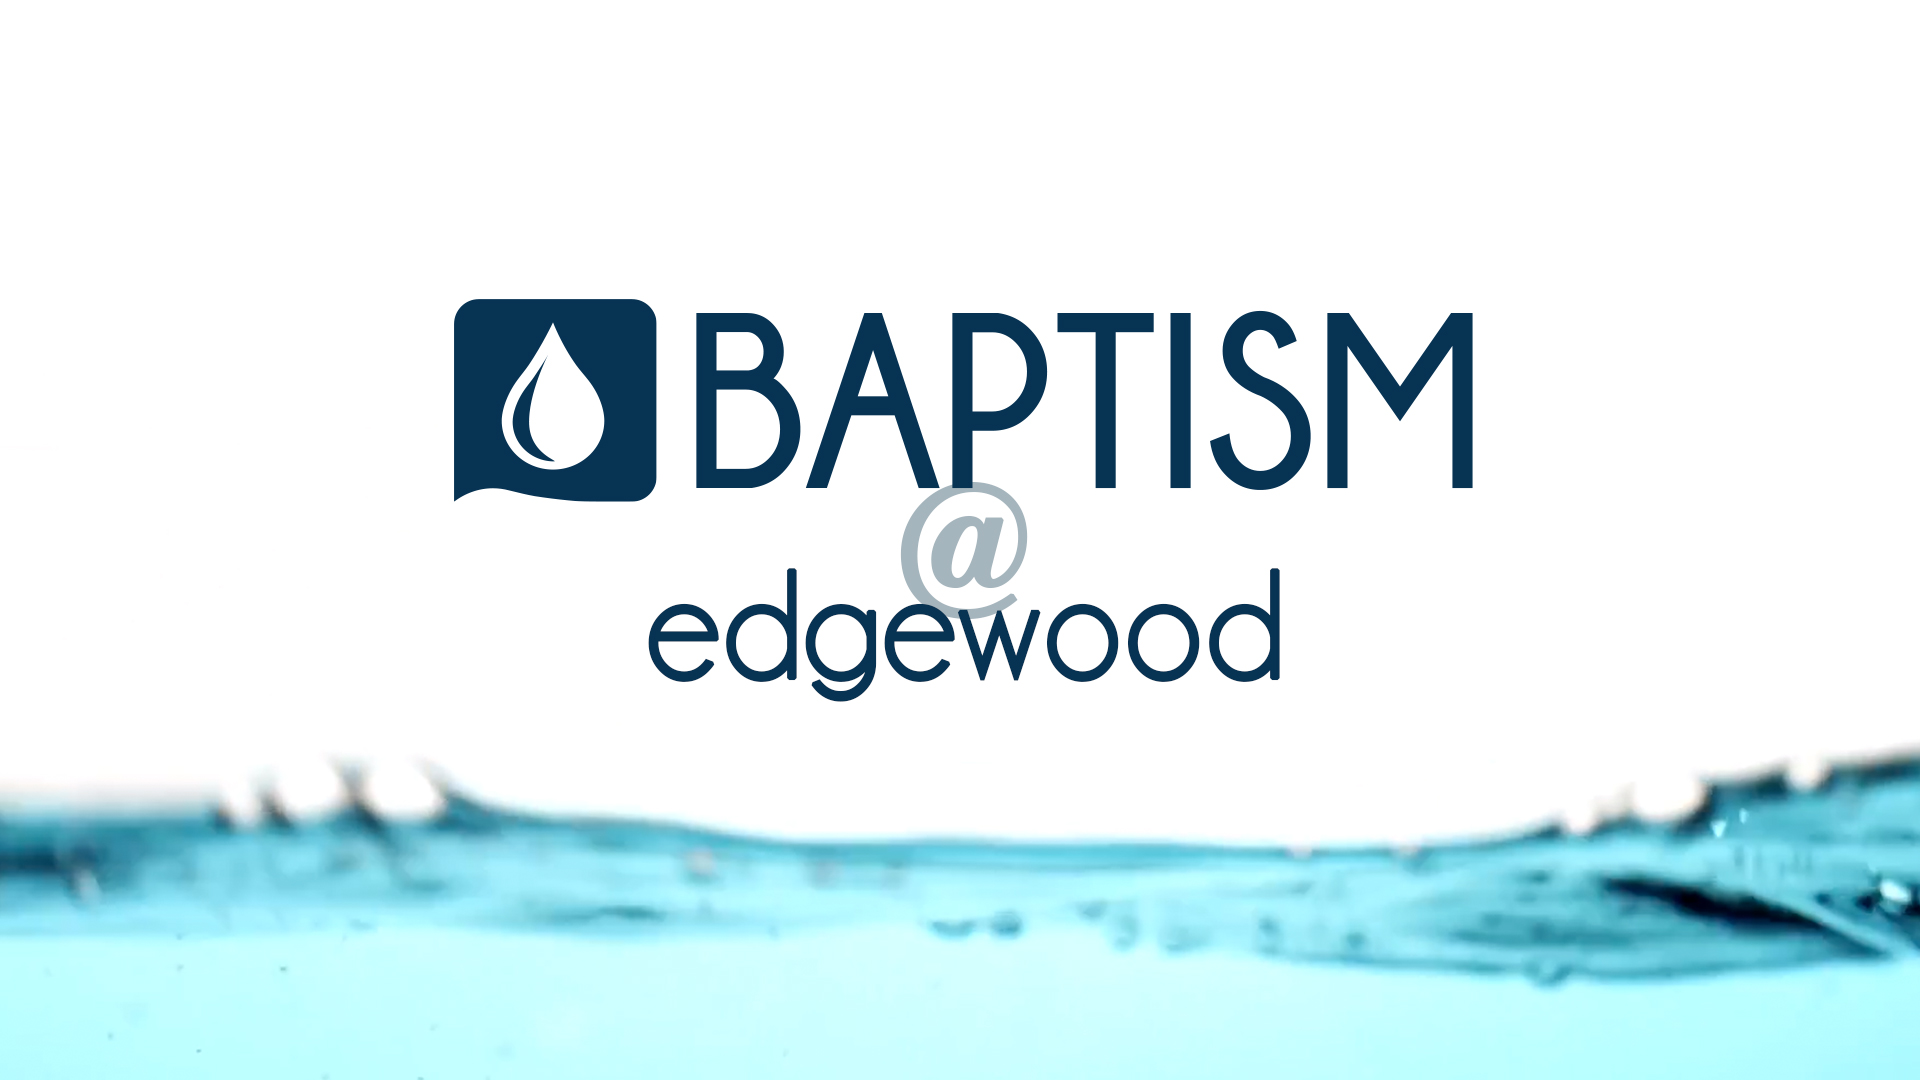 Baptism at Edgewood